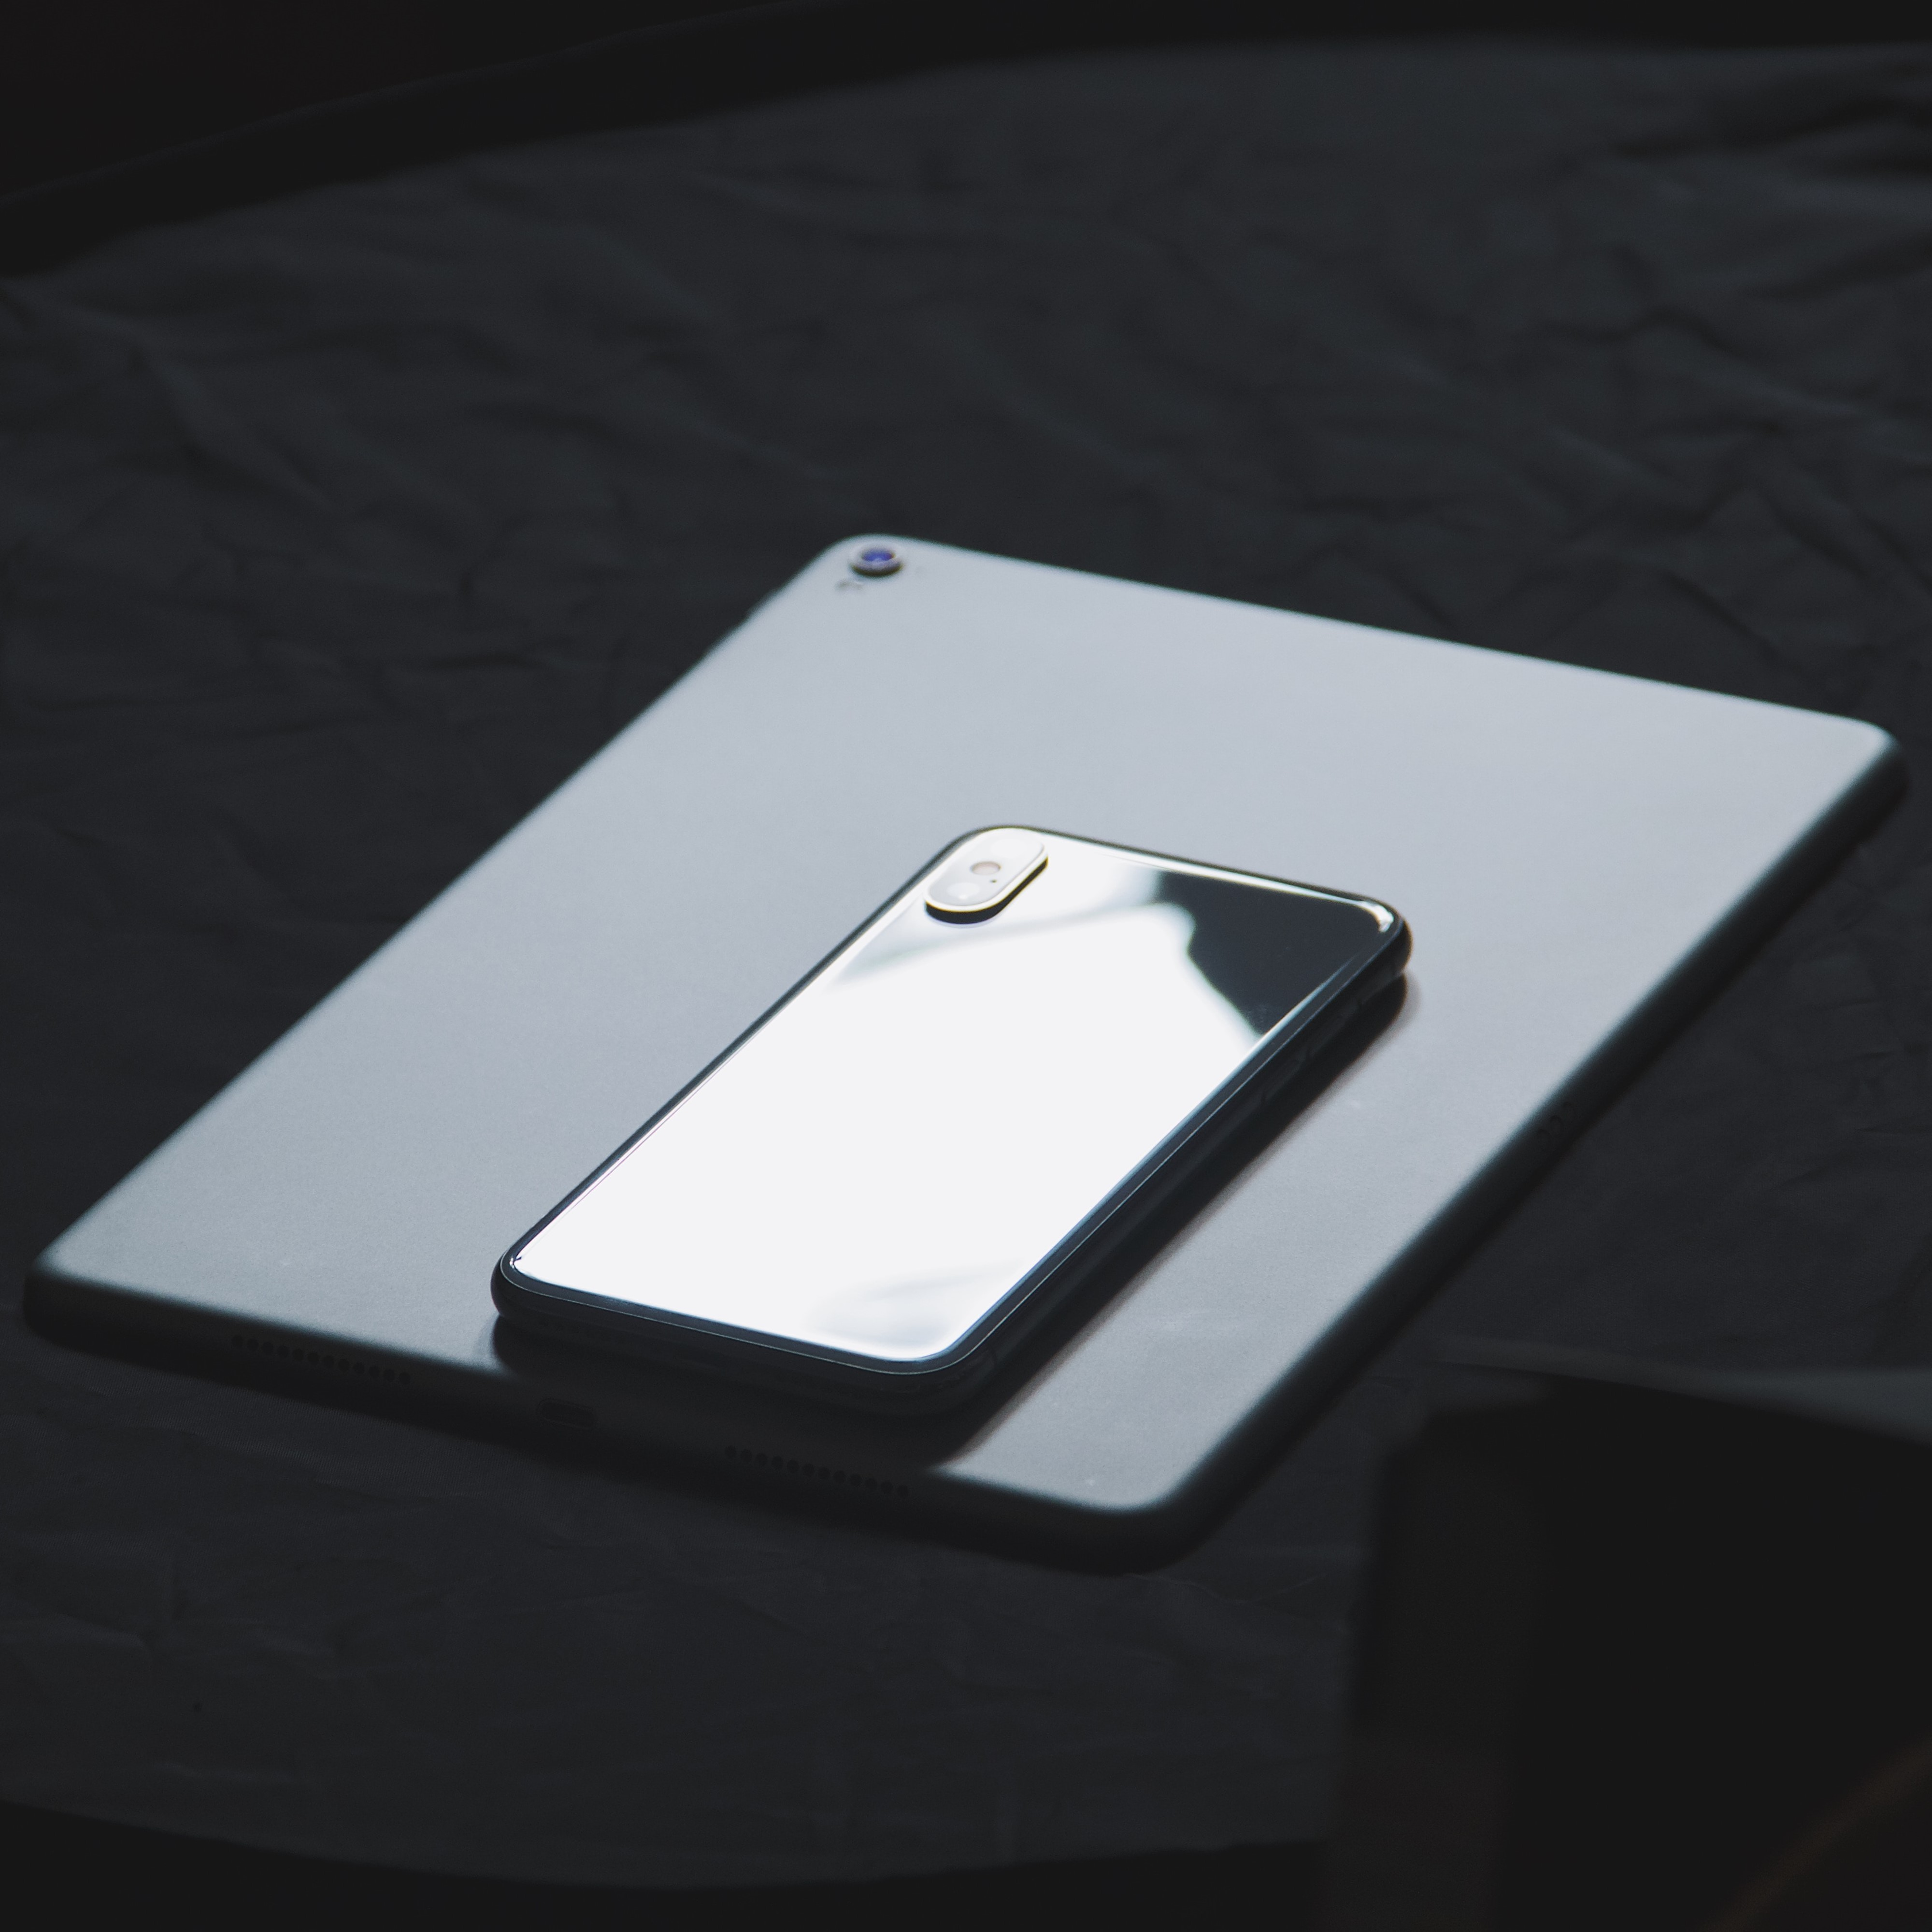 iPhone resting facedown on a facedown iPad